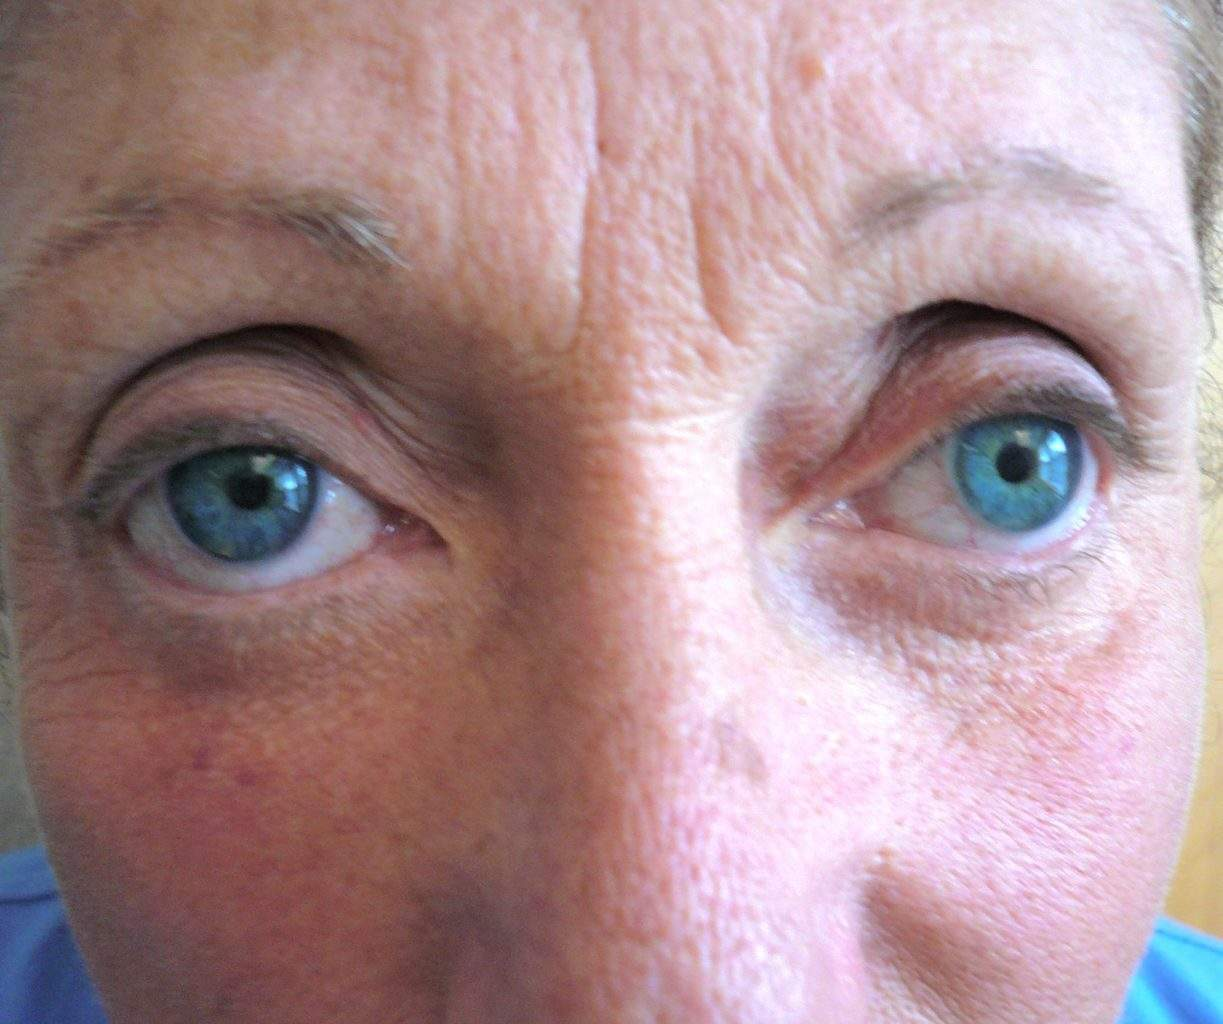 Image of post op Blepharoplasty Eyelid tightening with perfect results and non-visible scar by Best R.I. Plastic Surgeon